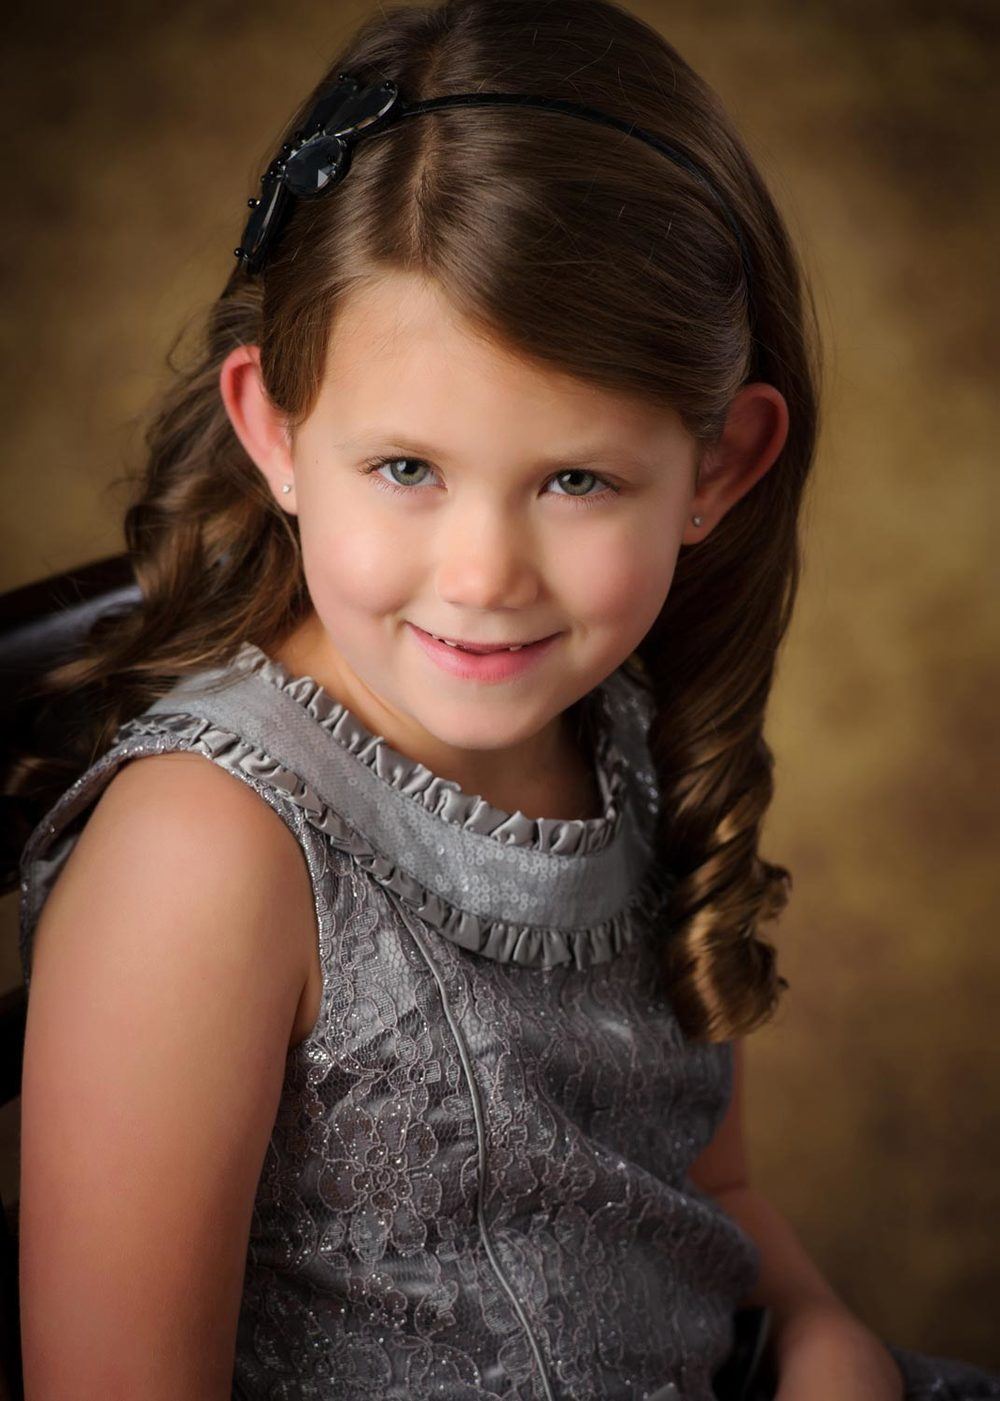 studio_walz_family_photographer_lexington_ky_e01.jpg